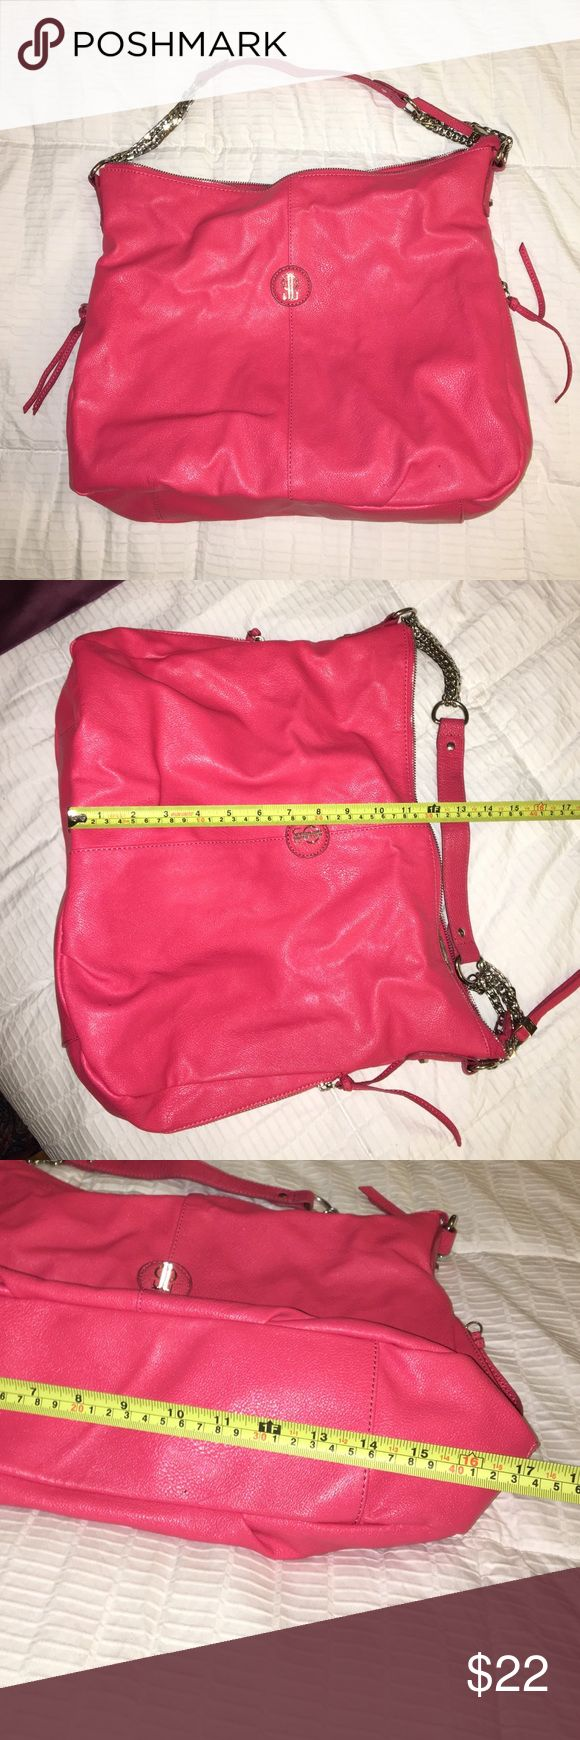 Jennifer Lopez Large Purse 💕 The color! Beautiful bright pink / coral is so easy to love! 💜 Not only is the color amazing but the compartments are awesome 🔥 Zipper pockets on each side. Divider pocket space in the middle of the bag as shown in pictures. Please see above pictures for wear and tear as well as the dimensions 😊 Jennifer Lopez Bags Shoulder Bags